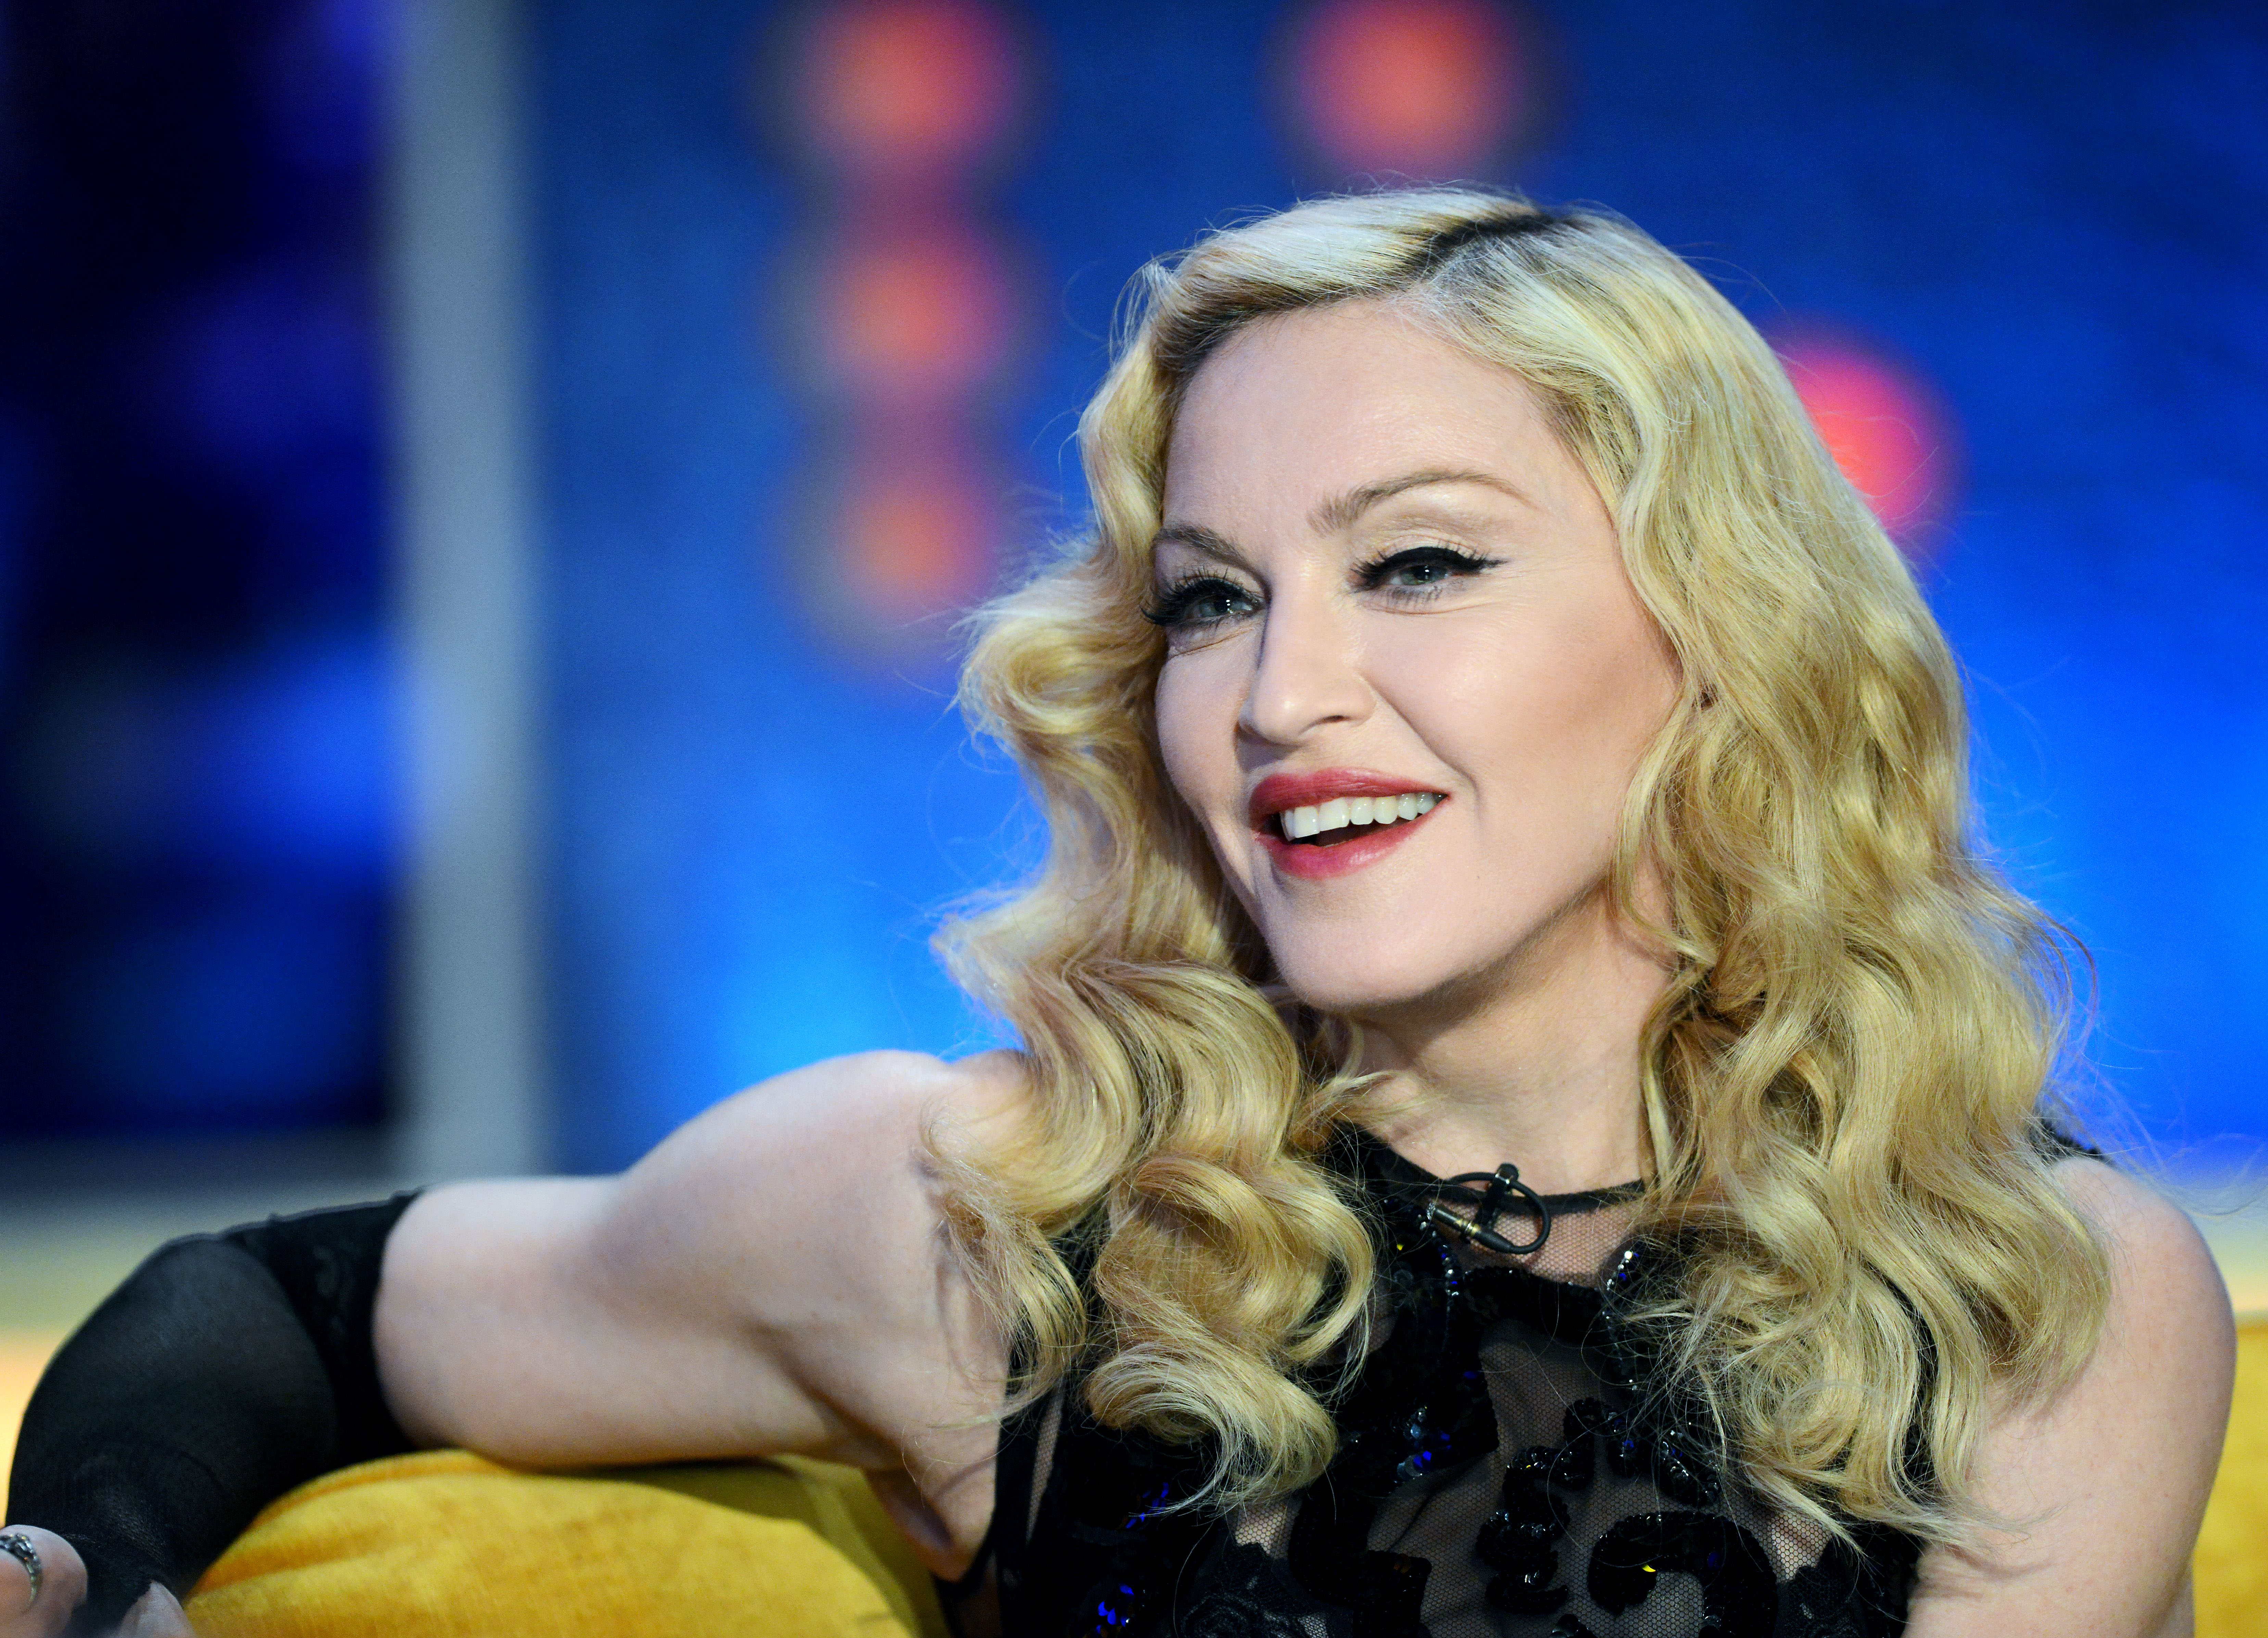 Madonna Wallpapers High Resolution And Quality Download